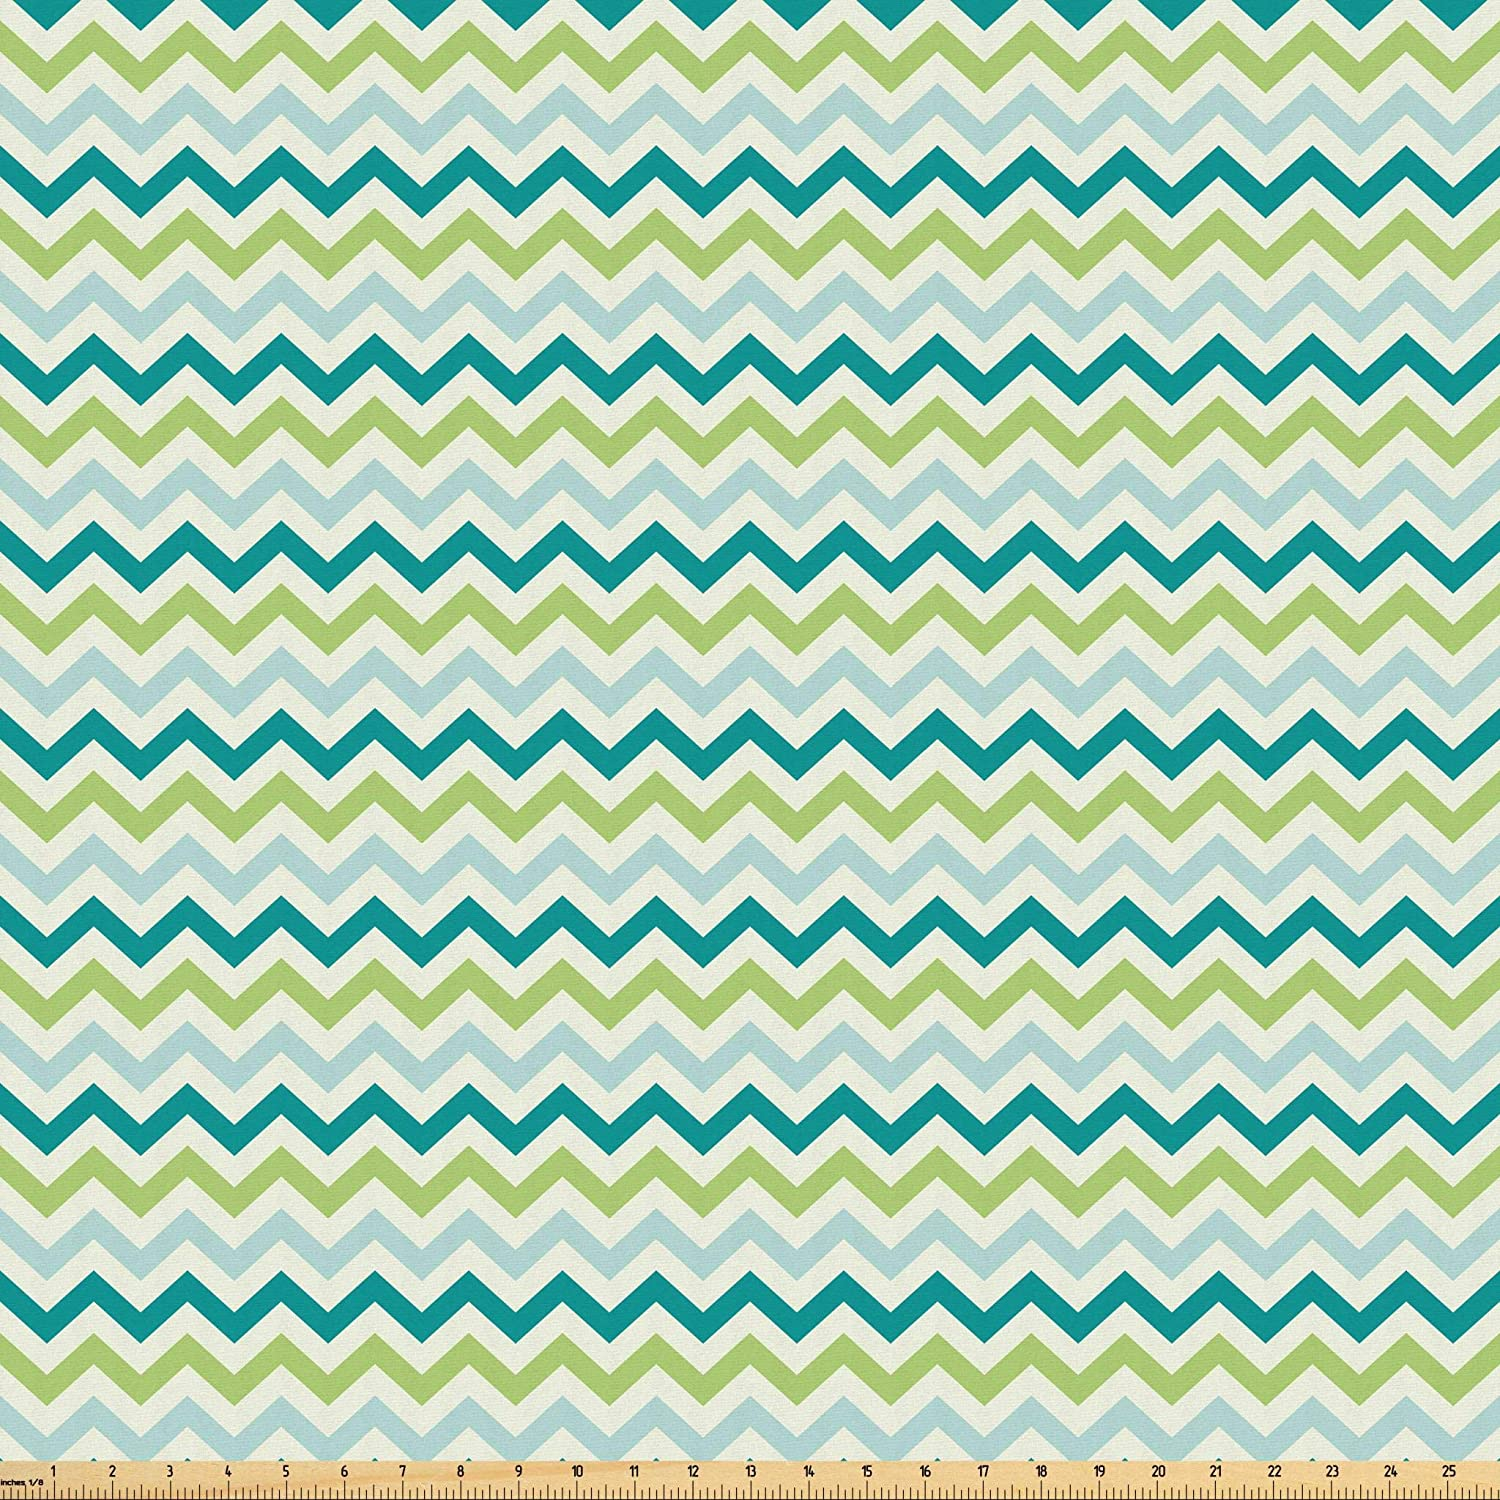 Lunarable Chevron Fabric by The Yard, Chevron Pattern in Cool Pastel Color Palette Creativity Springtime, Microfiber Fabric for Arts and Crafts Textiles & Decor, 1 Yard, Lime Green